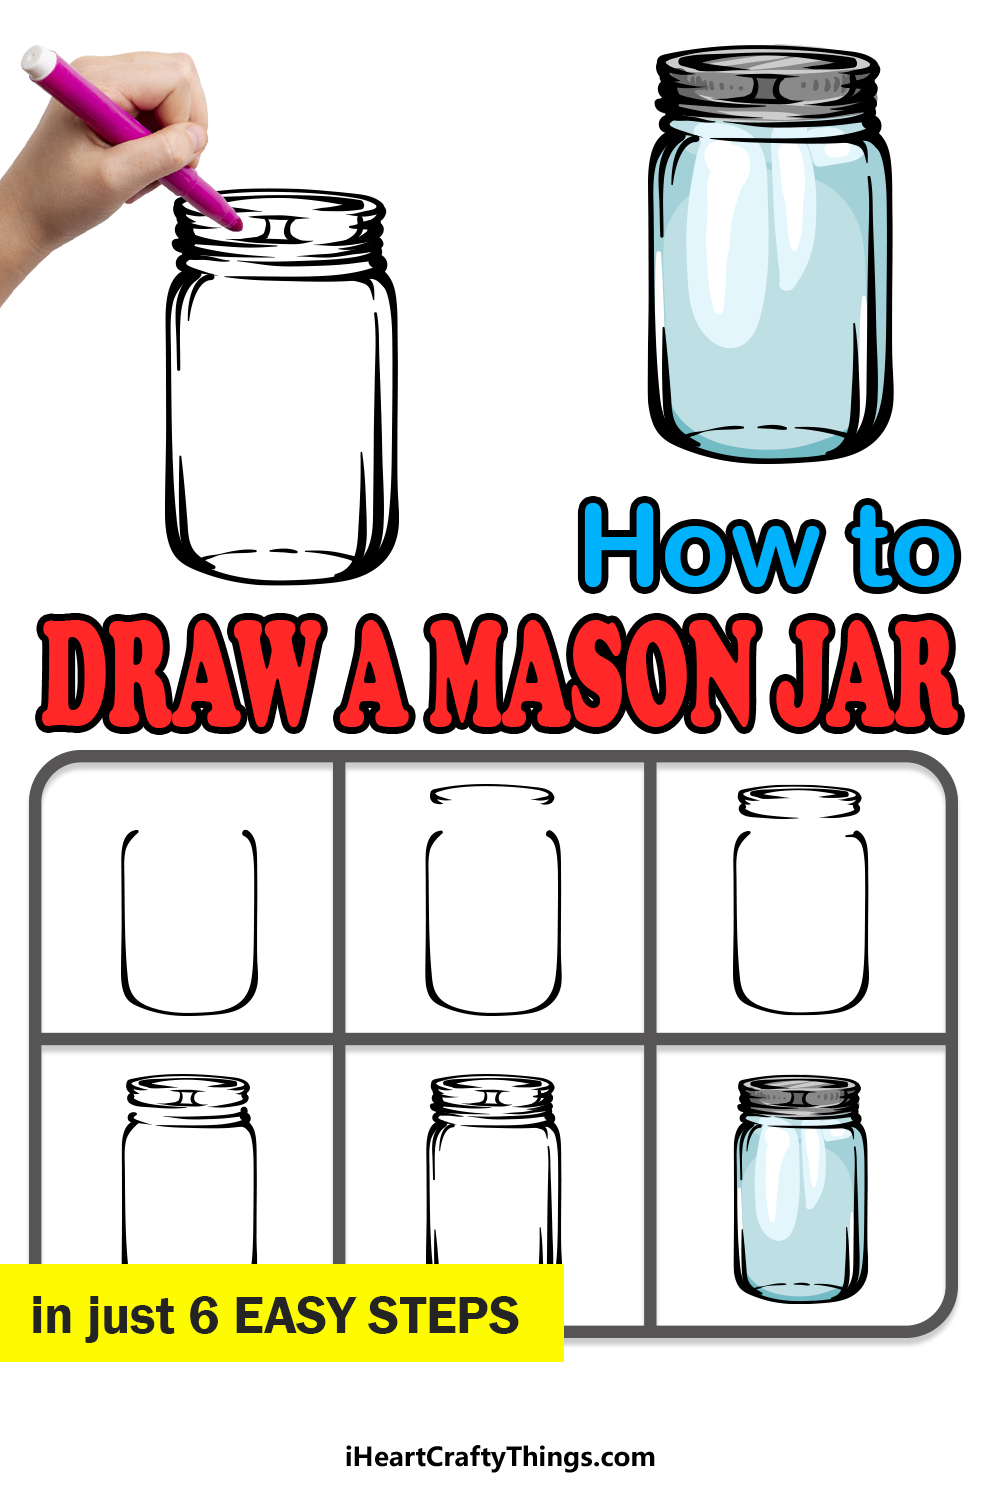 how to draw a mason jar in 6 easy steps